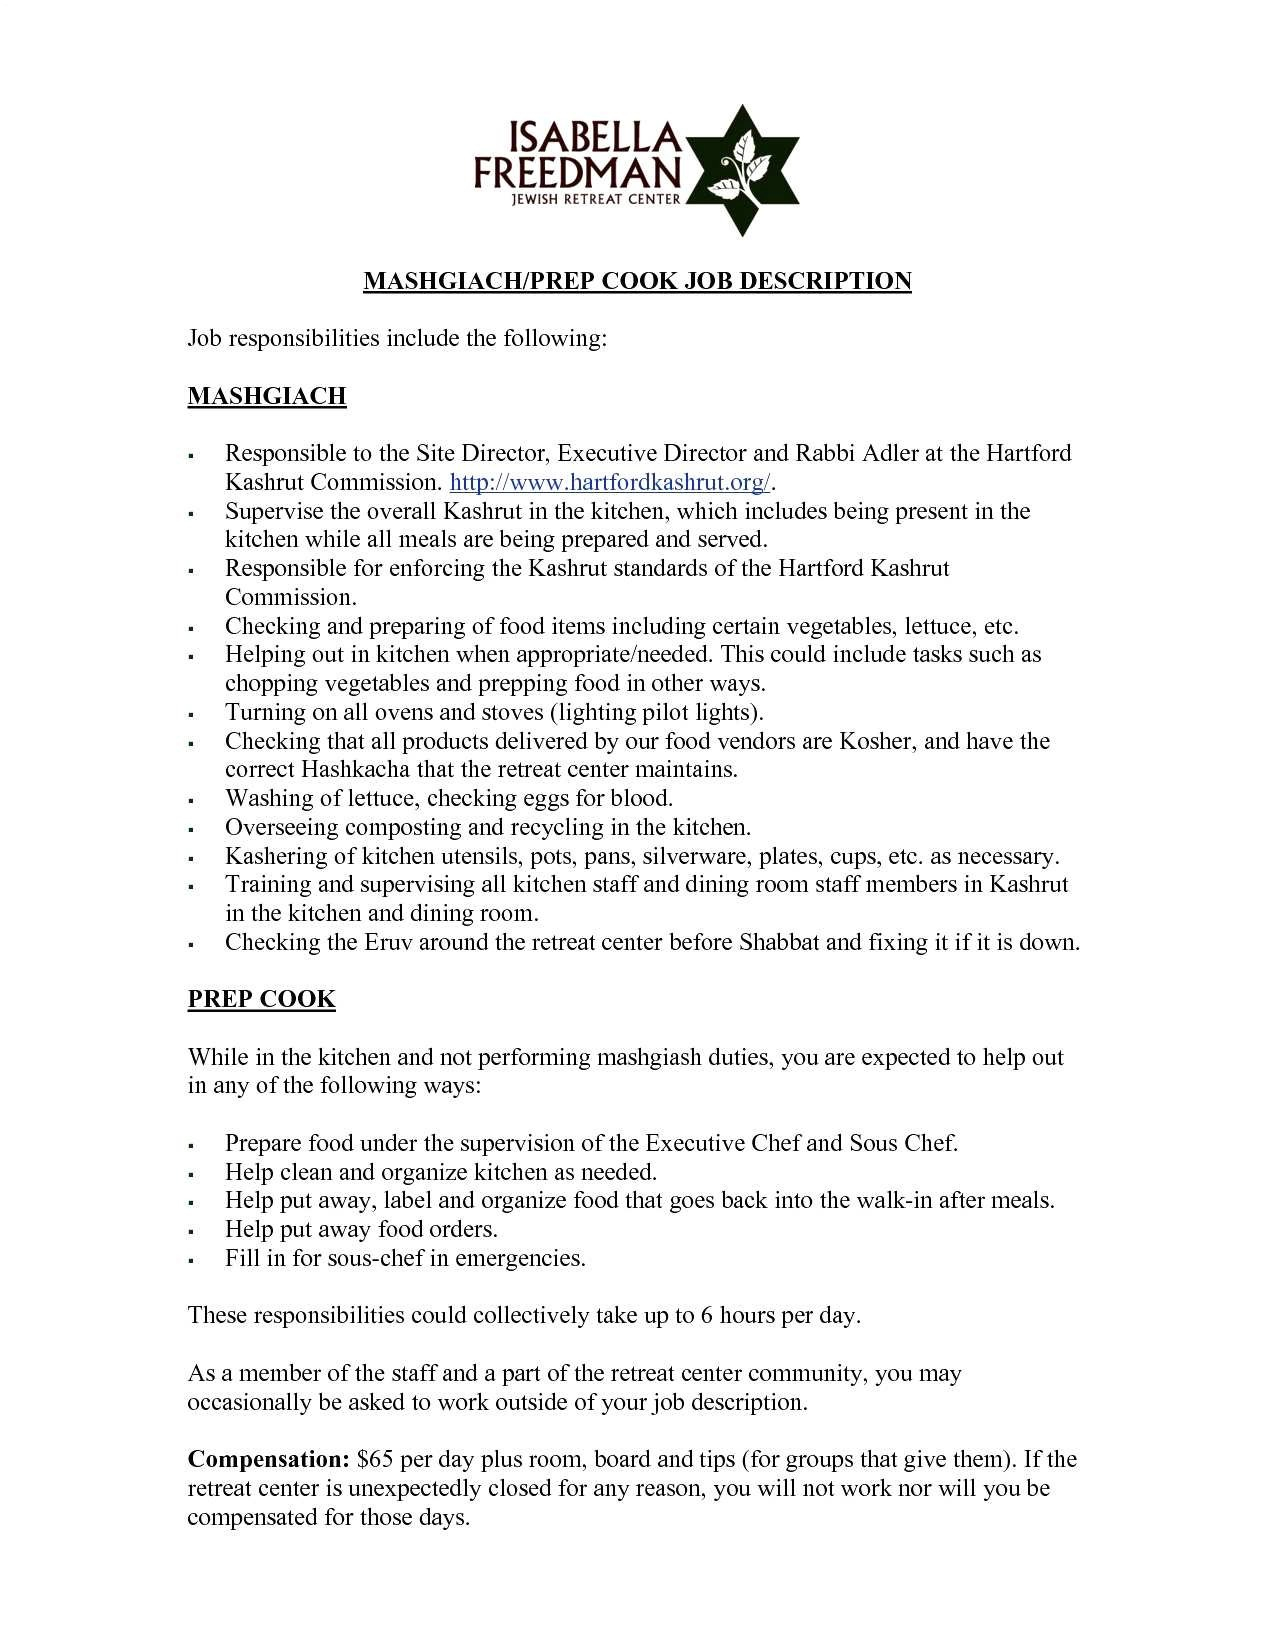 Monster Resume Service - 22 Unique Monster Resume Templates